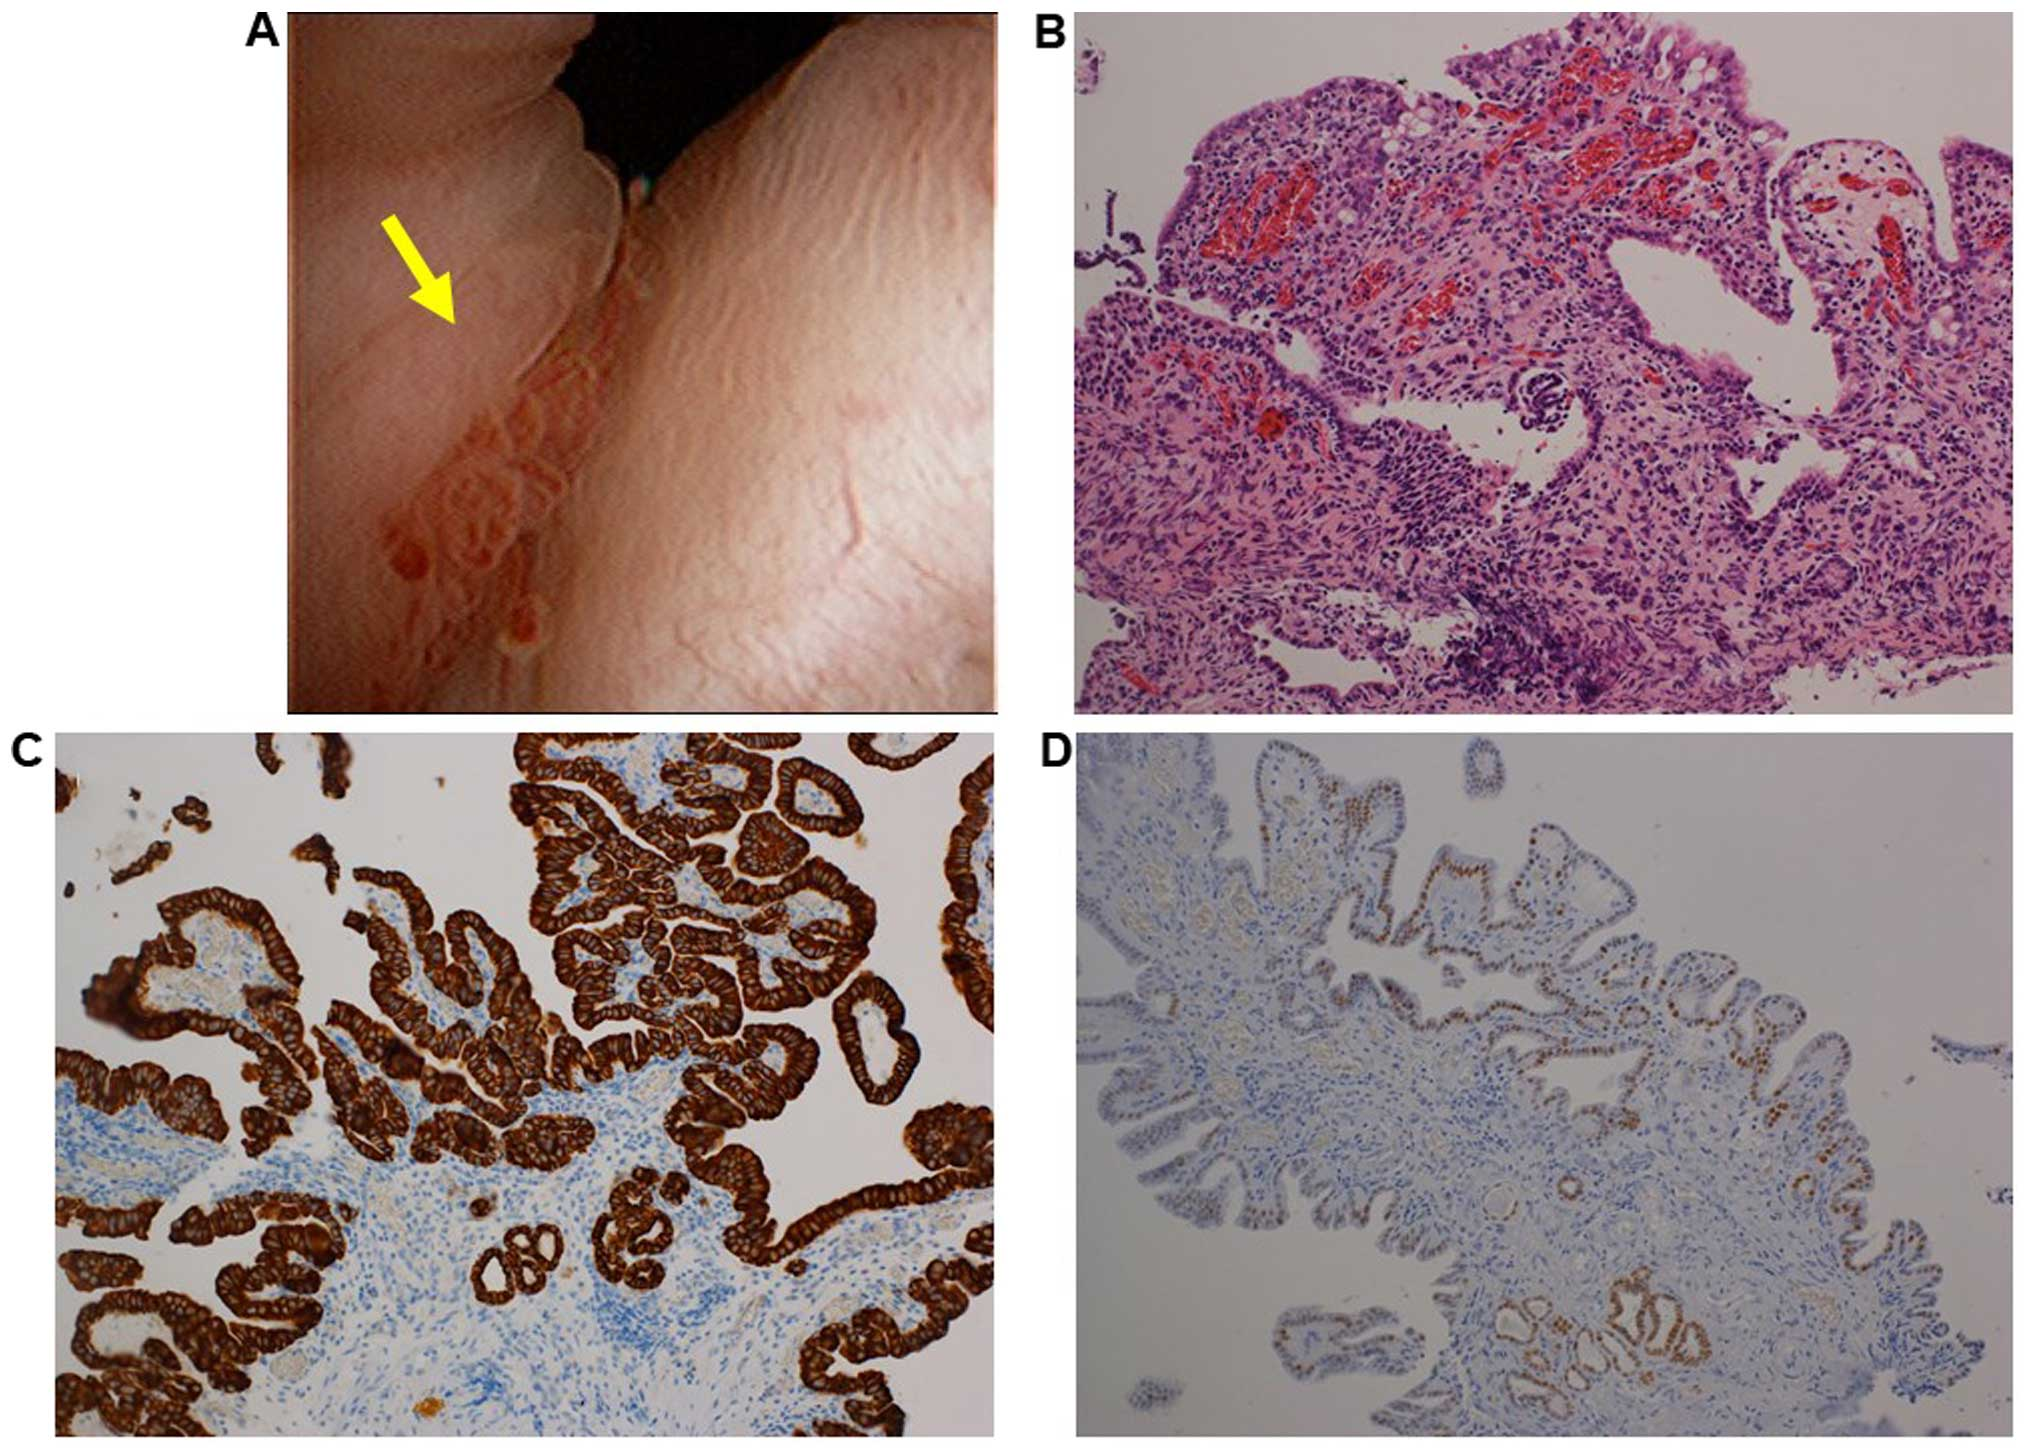 papillary lesions of urinary bladder